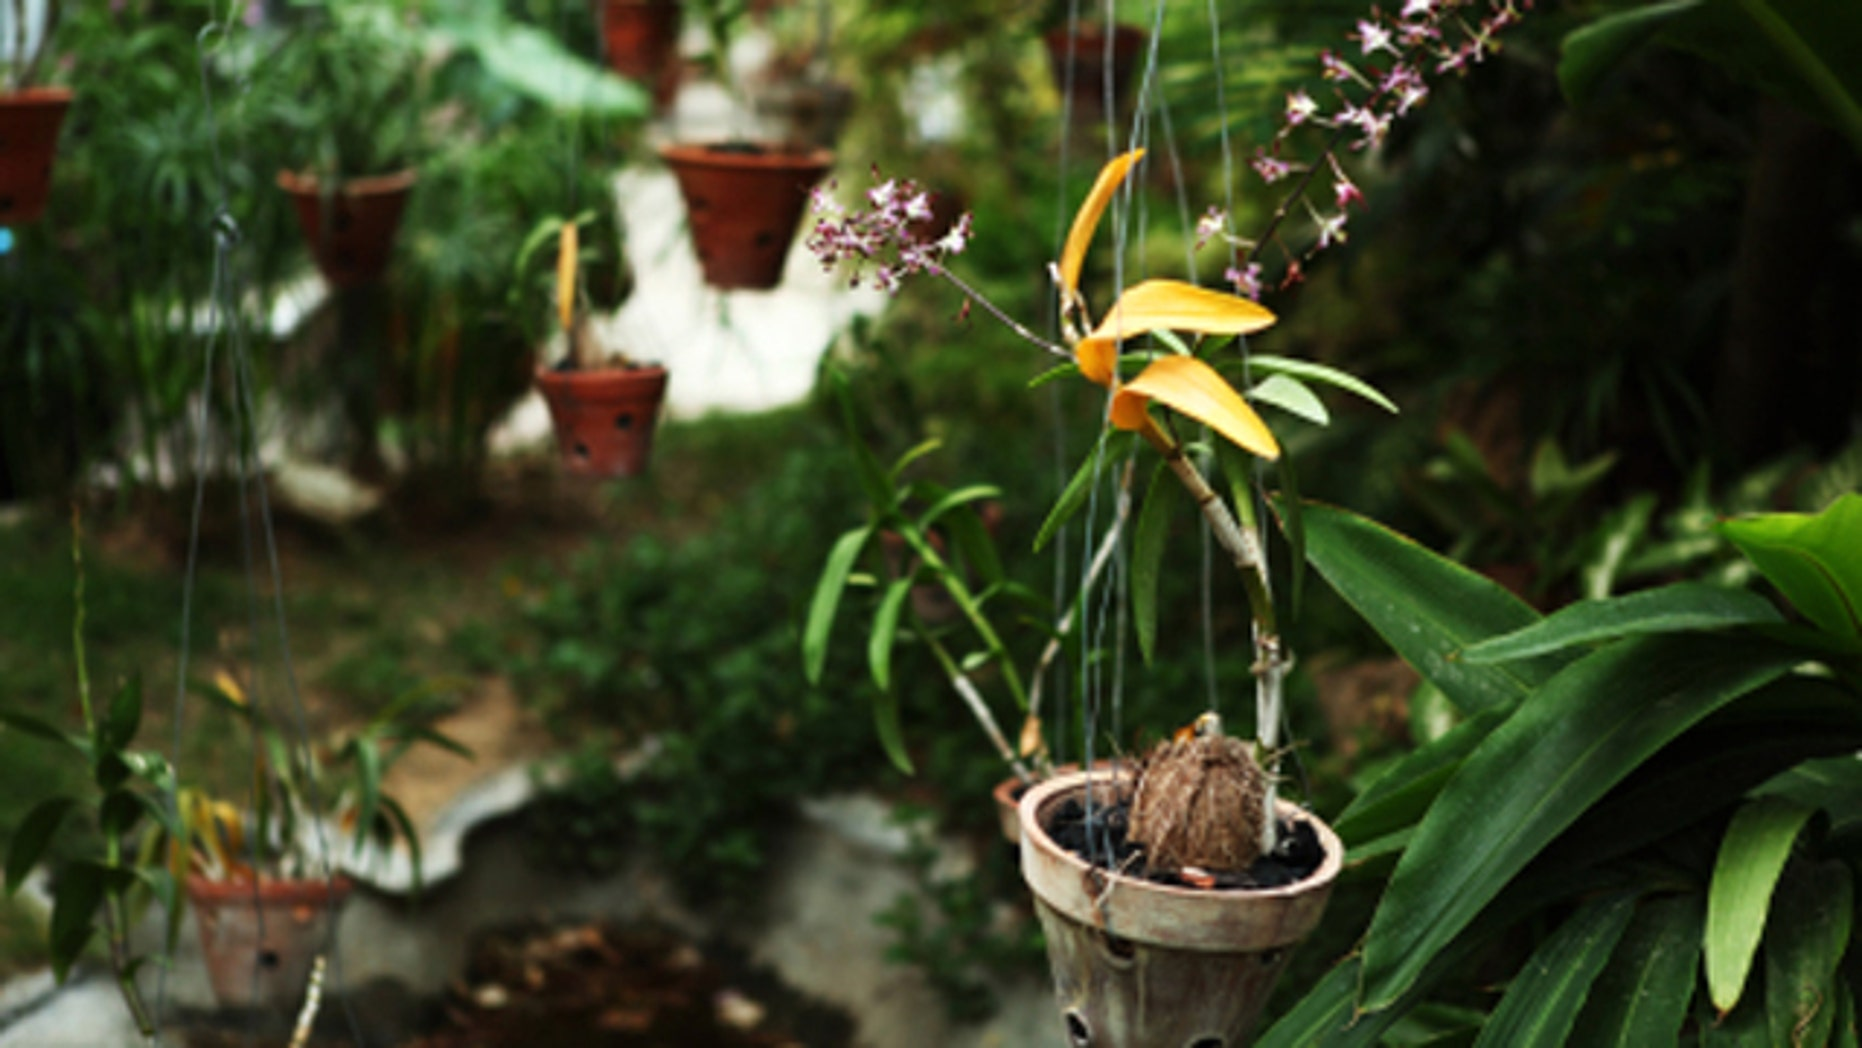 For Those With Small Yards, Or No Yards At All, A Verdant, Thriving Garden  Can Seem Like An Impossibility. But More And More People Are Looking Upward  To ...